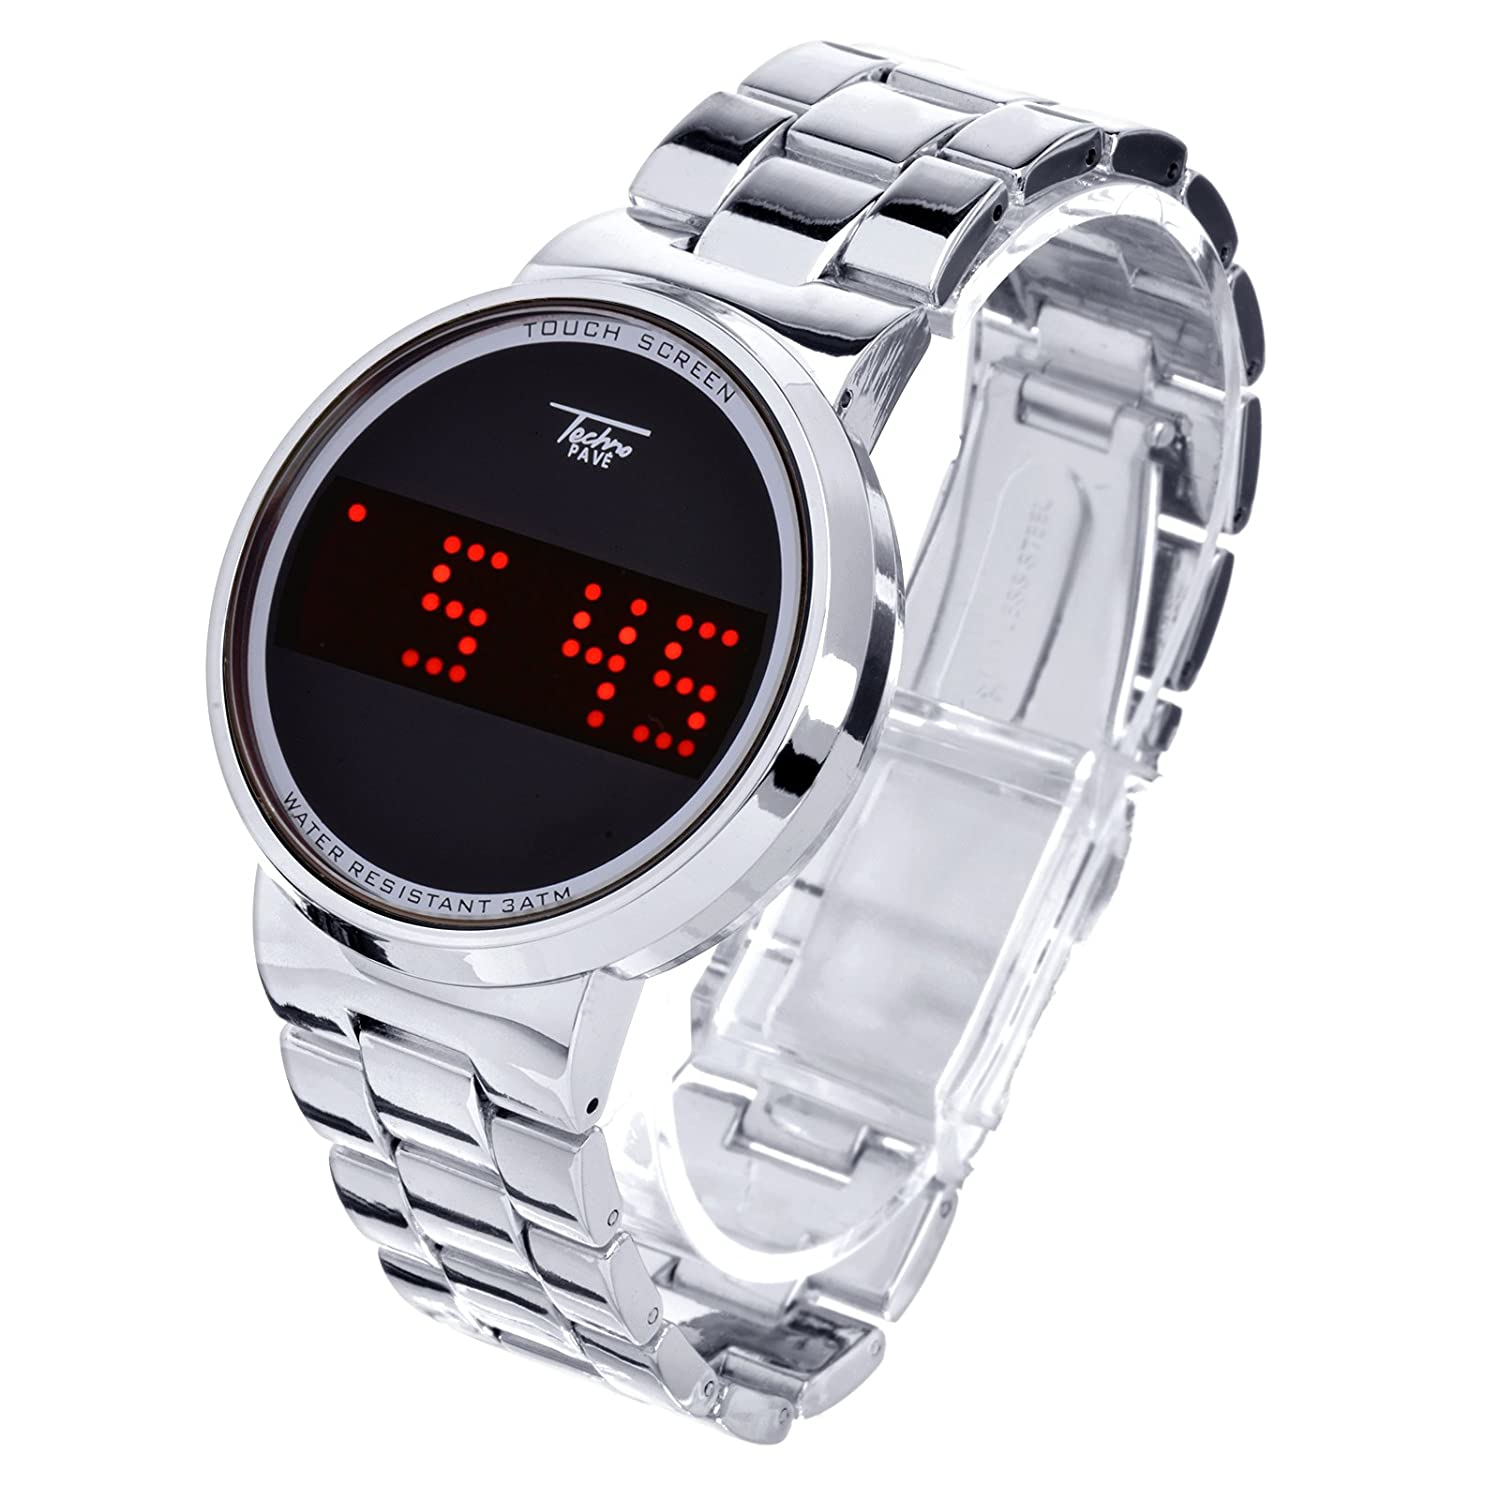 Amazon.com: Digital Touch Screen Metal Band Watches WM 8164 S: Health & Personal Care